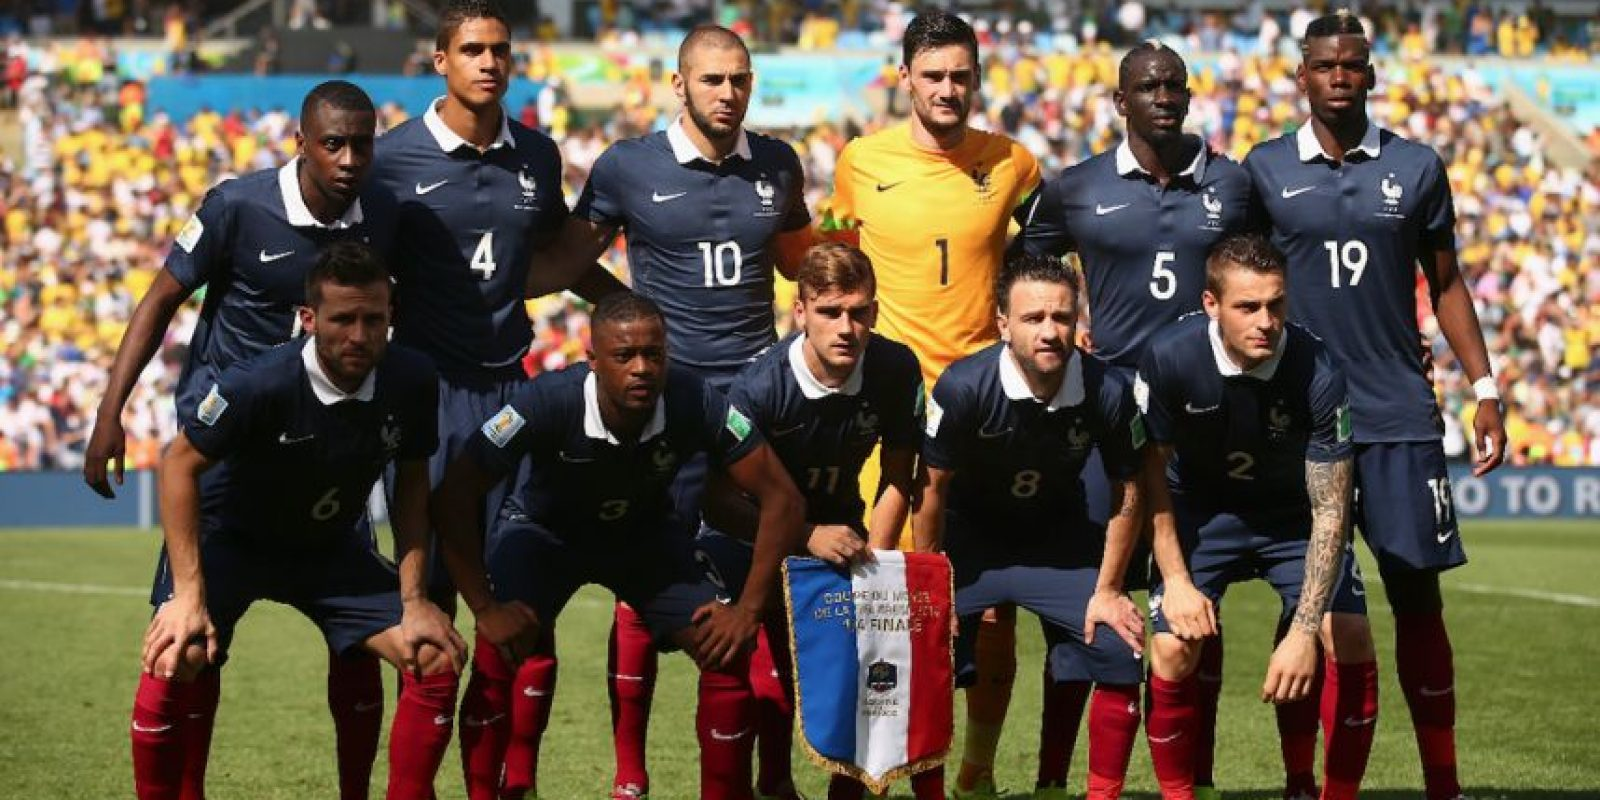 Francia, por ser local, pasa directamente al grupo A. Foto: Getty Images